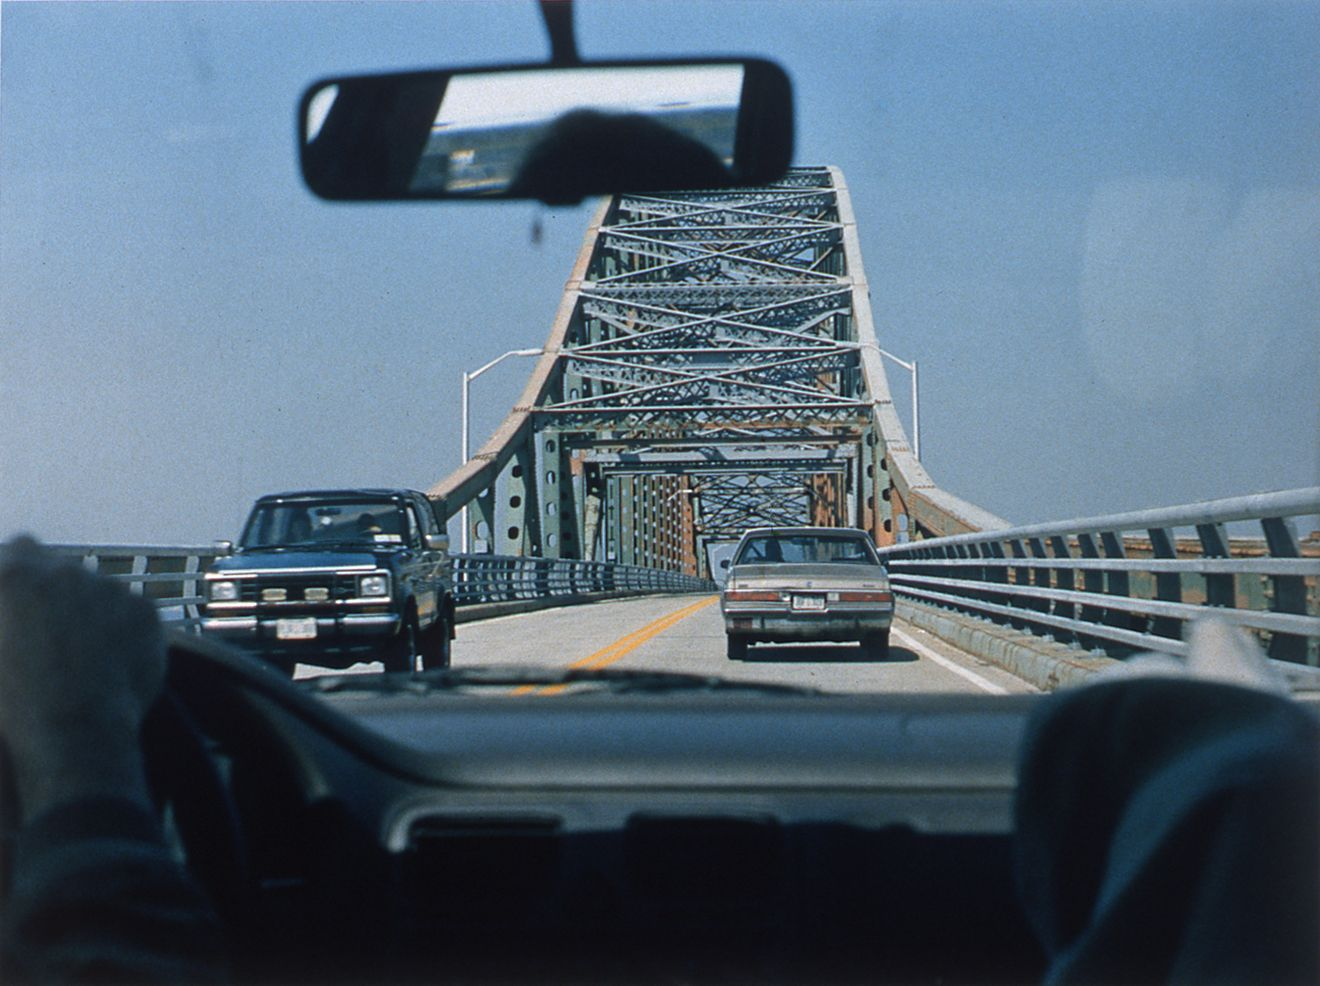 Josephine Meckseper, The Great Escape (Bridge), 1996, c-print, 30 x 40 inches